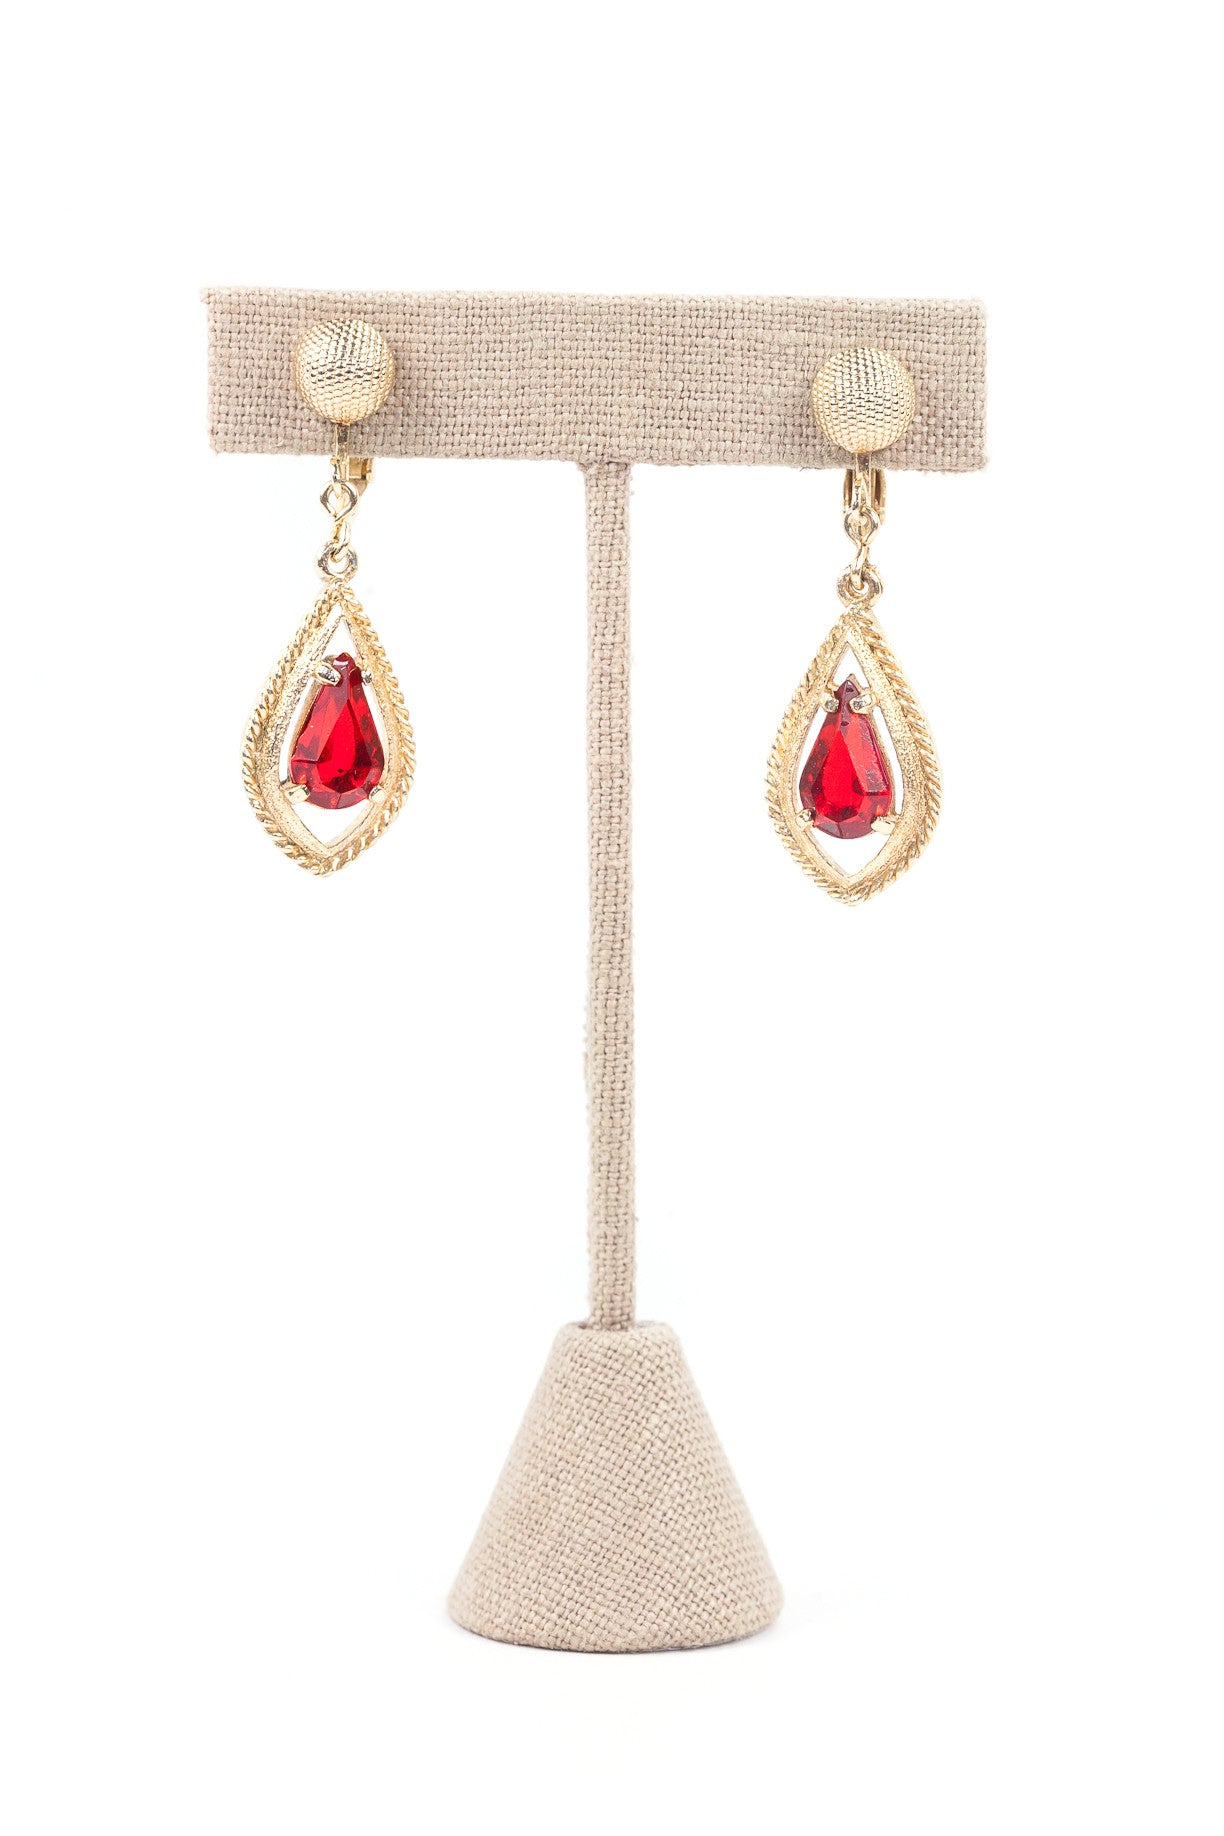 70's__Sarah Coventry__Ruby Drop Clip-on Earrings